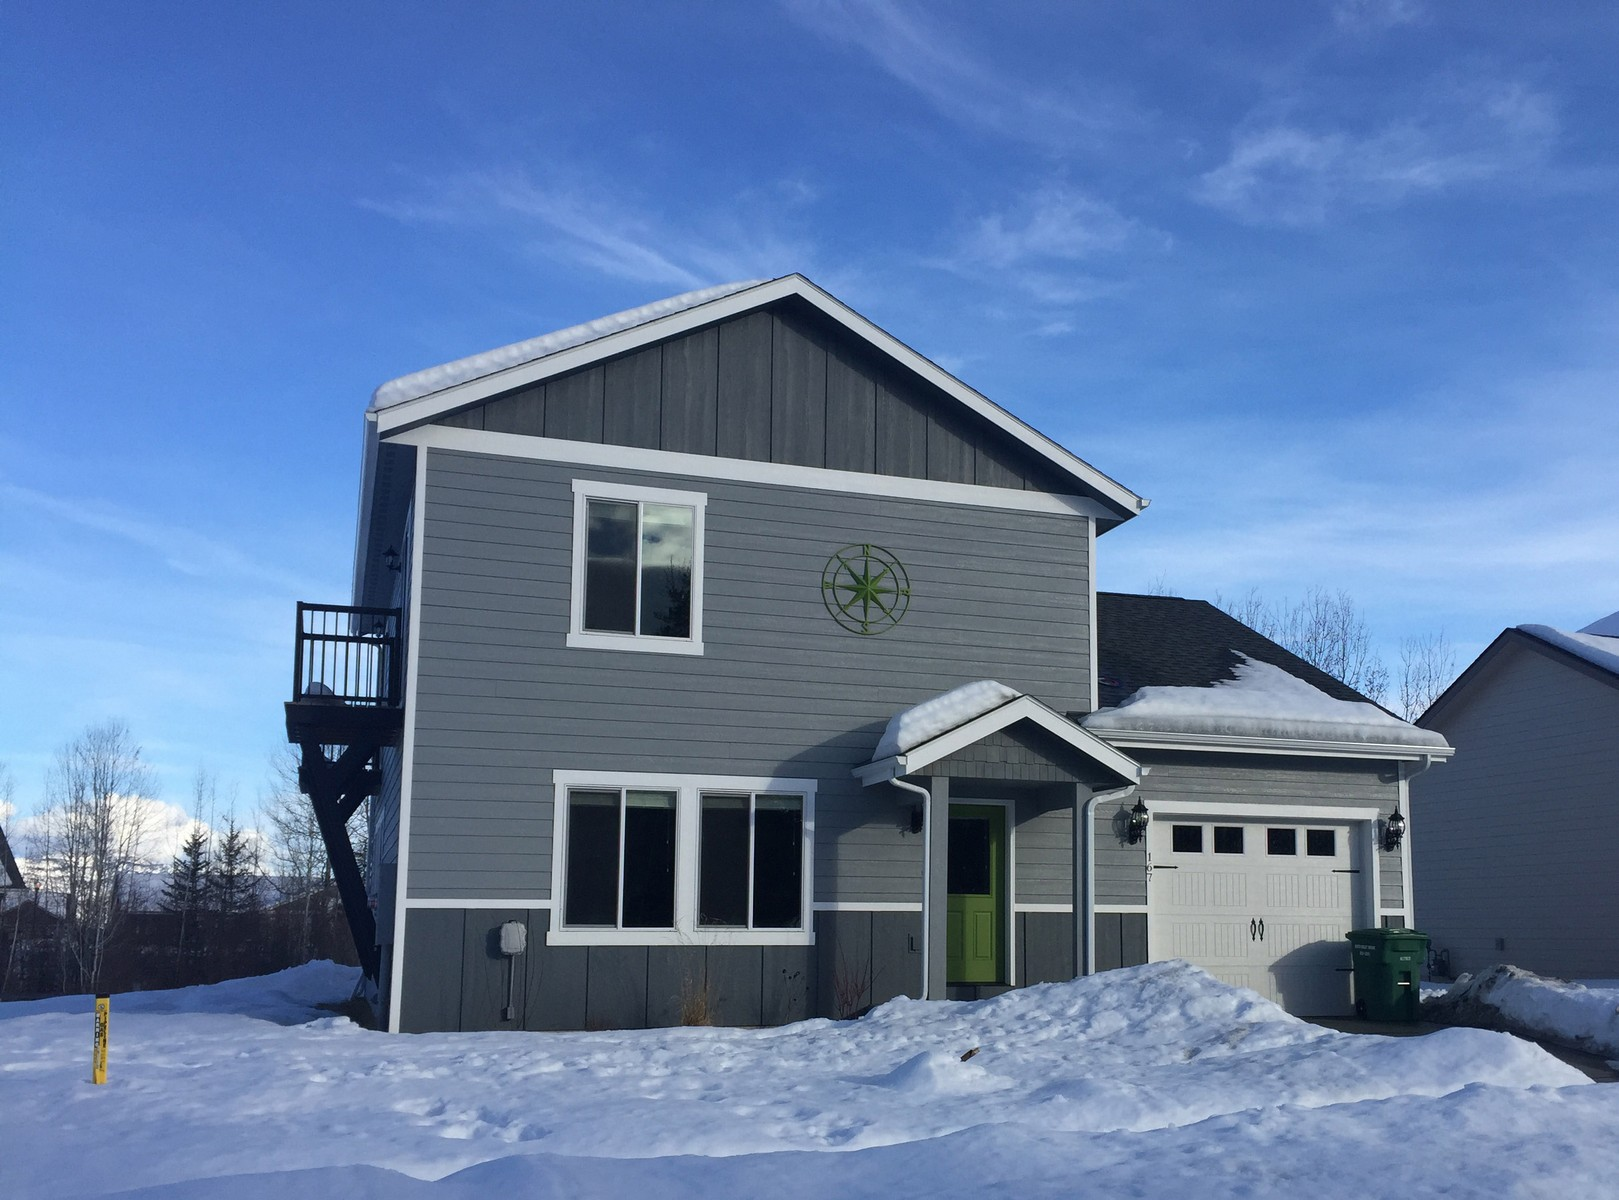 Single Family Home for Sale at 167 Brimstone Dr , Whitefish, MT 59937 167 Brimstone Dr Whitefish, Montana, 59937 United States